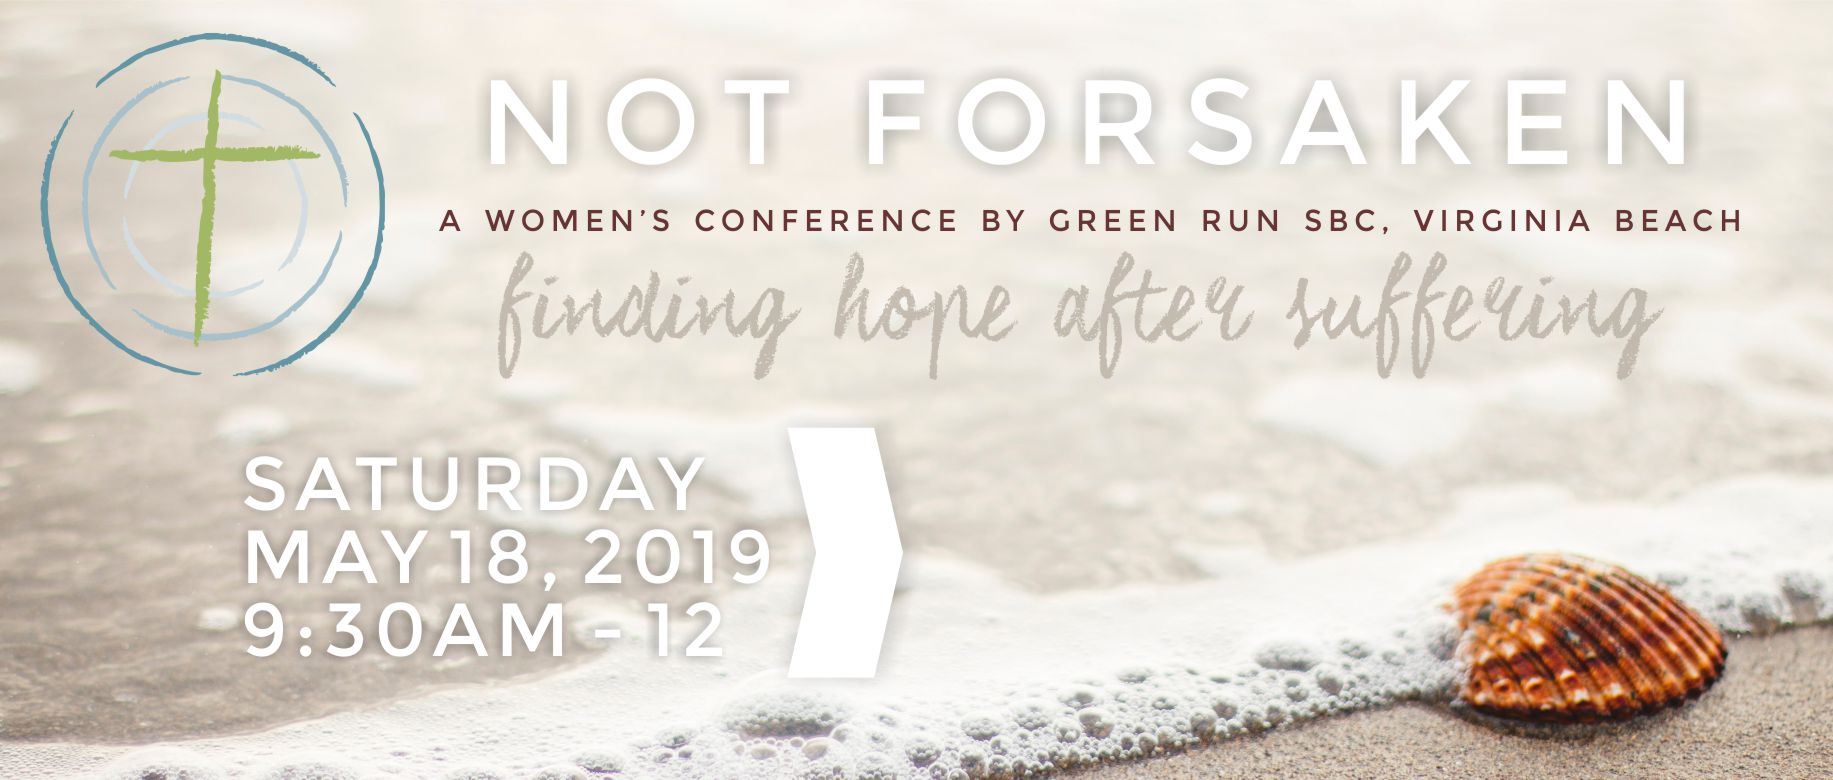 Green Run Baptist Church Women's Ministry Conference